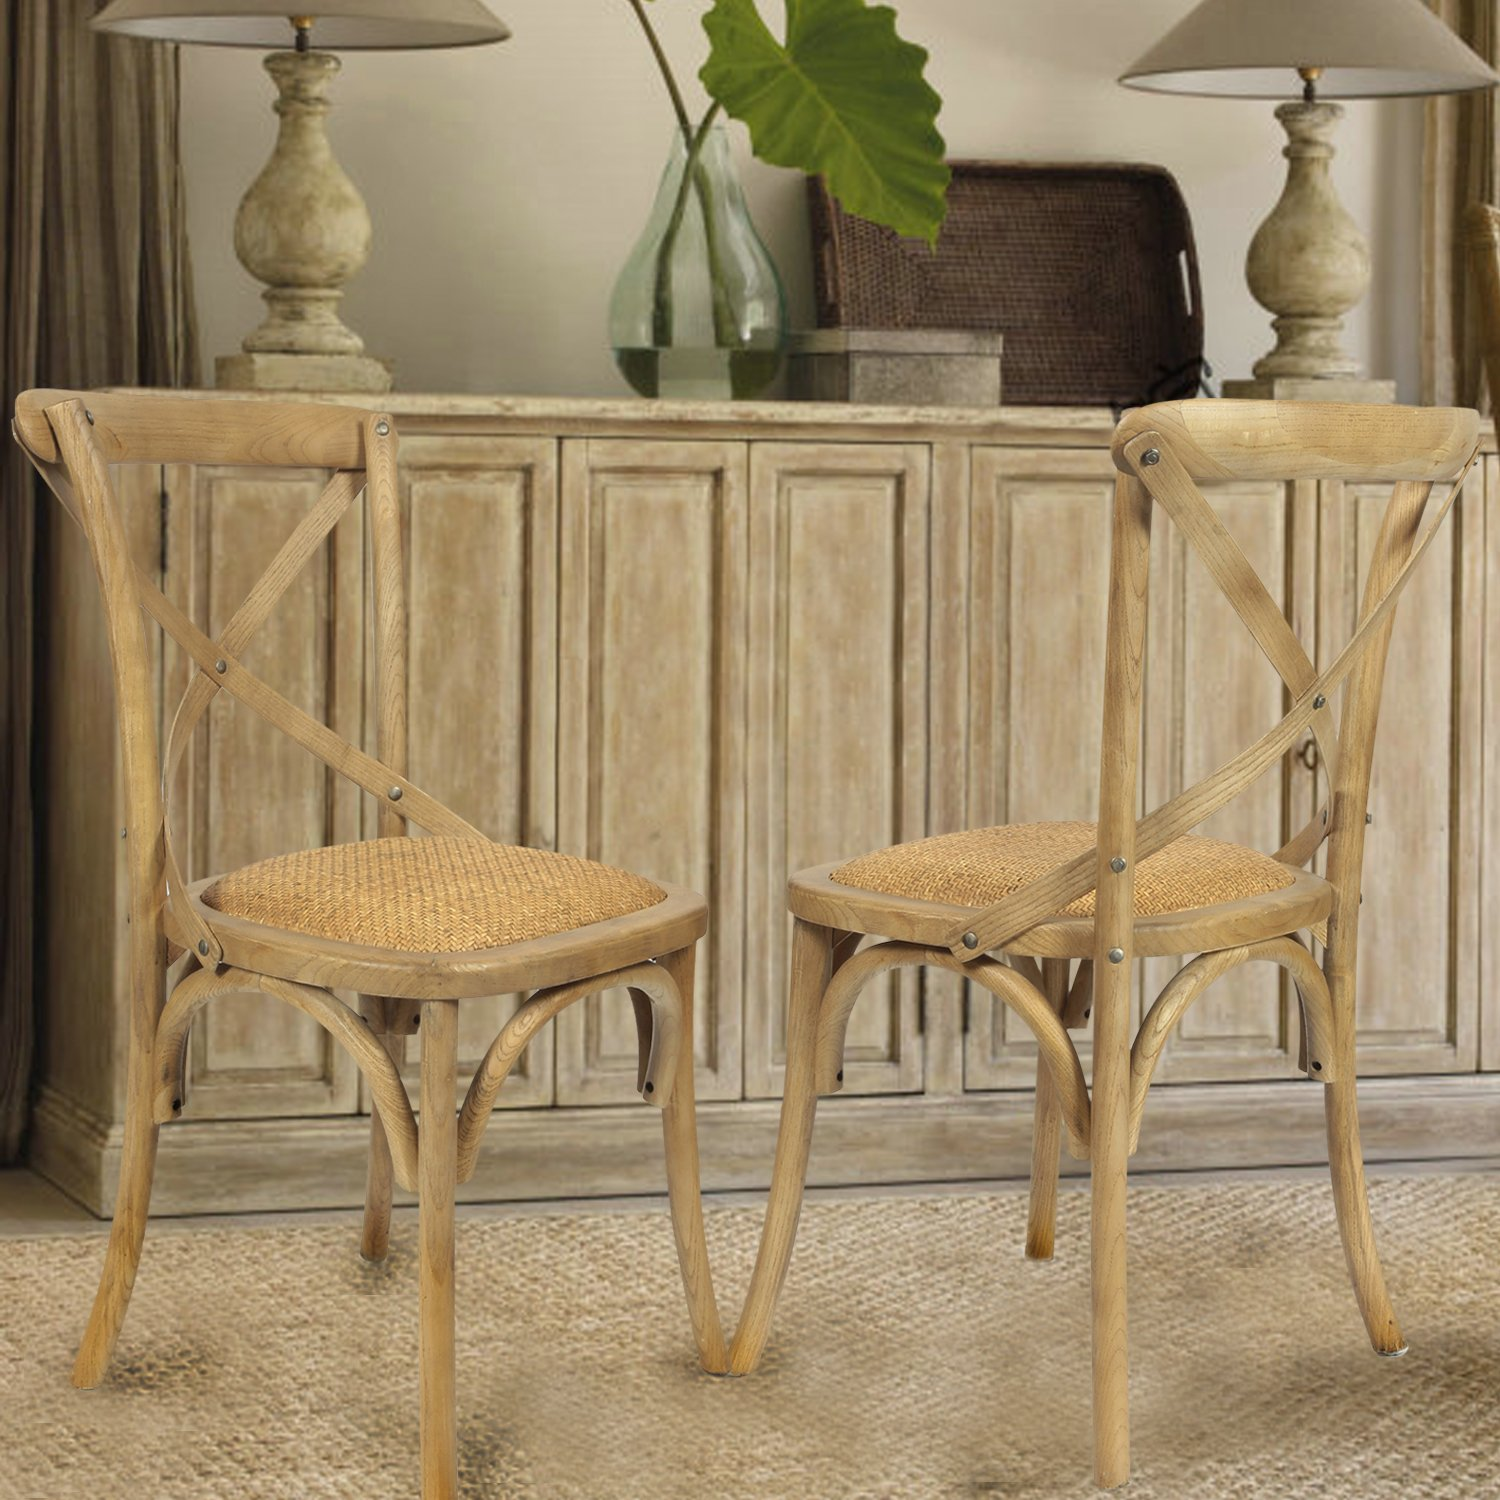 Set Of 2 Antique Wooden Dining Chairs Padded Seat Rattan